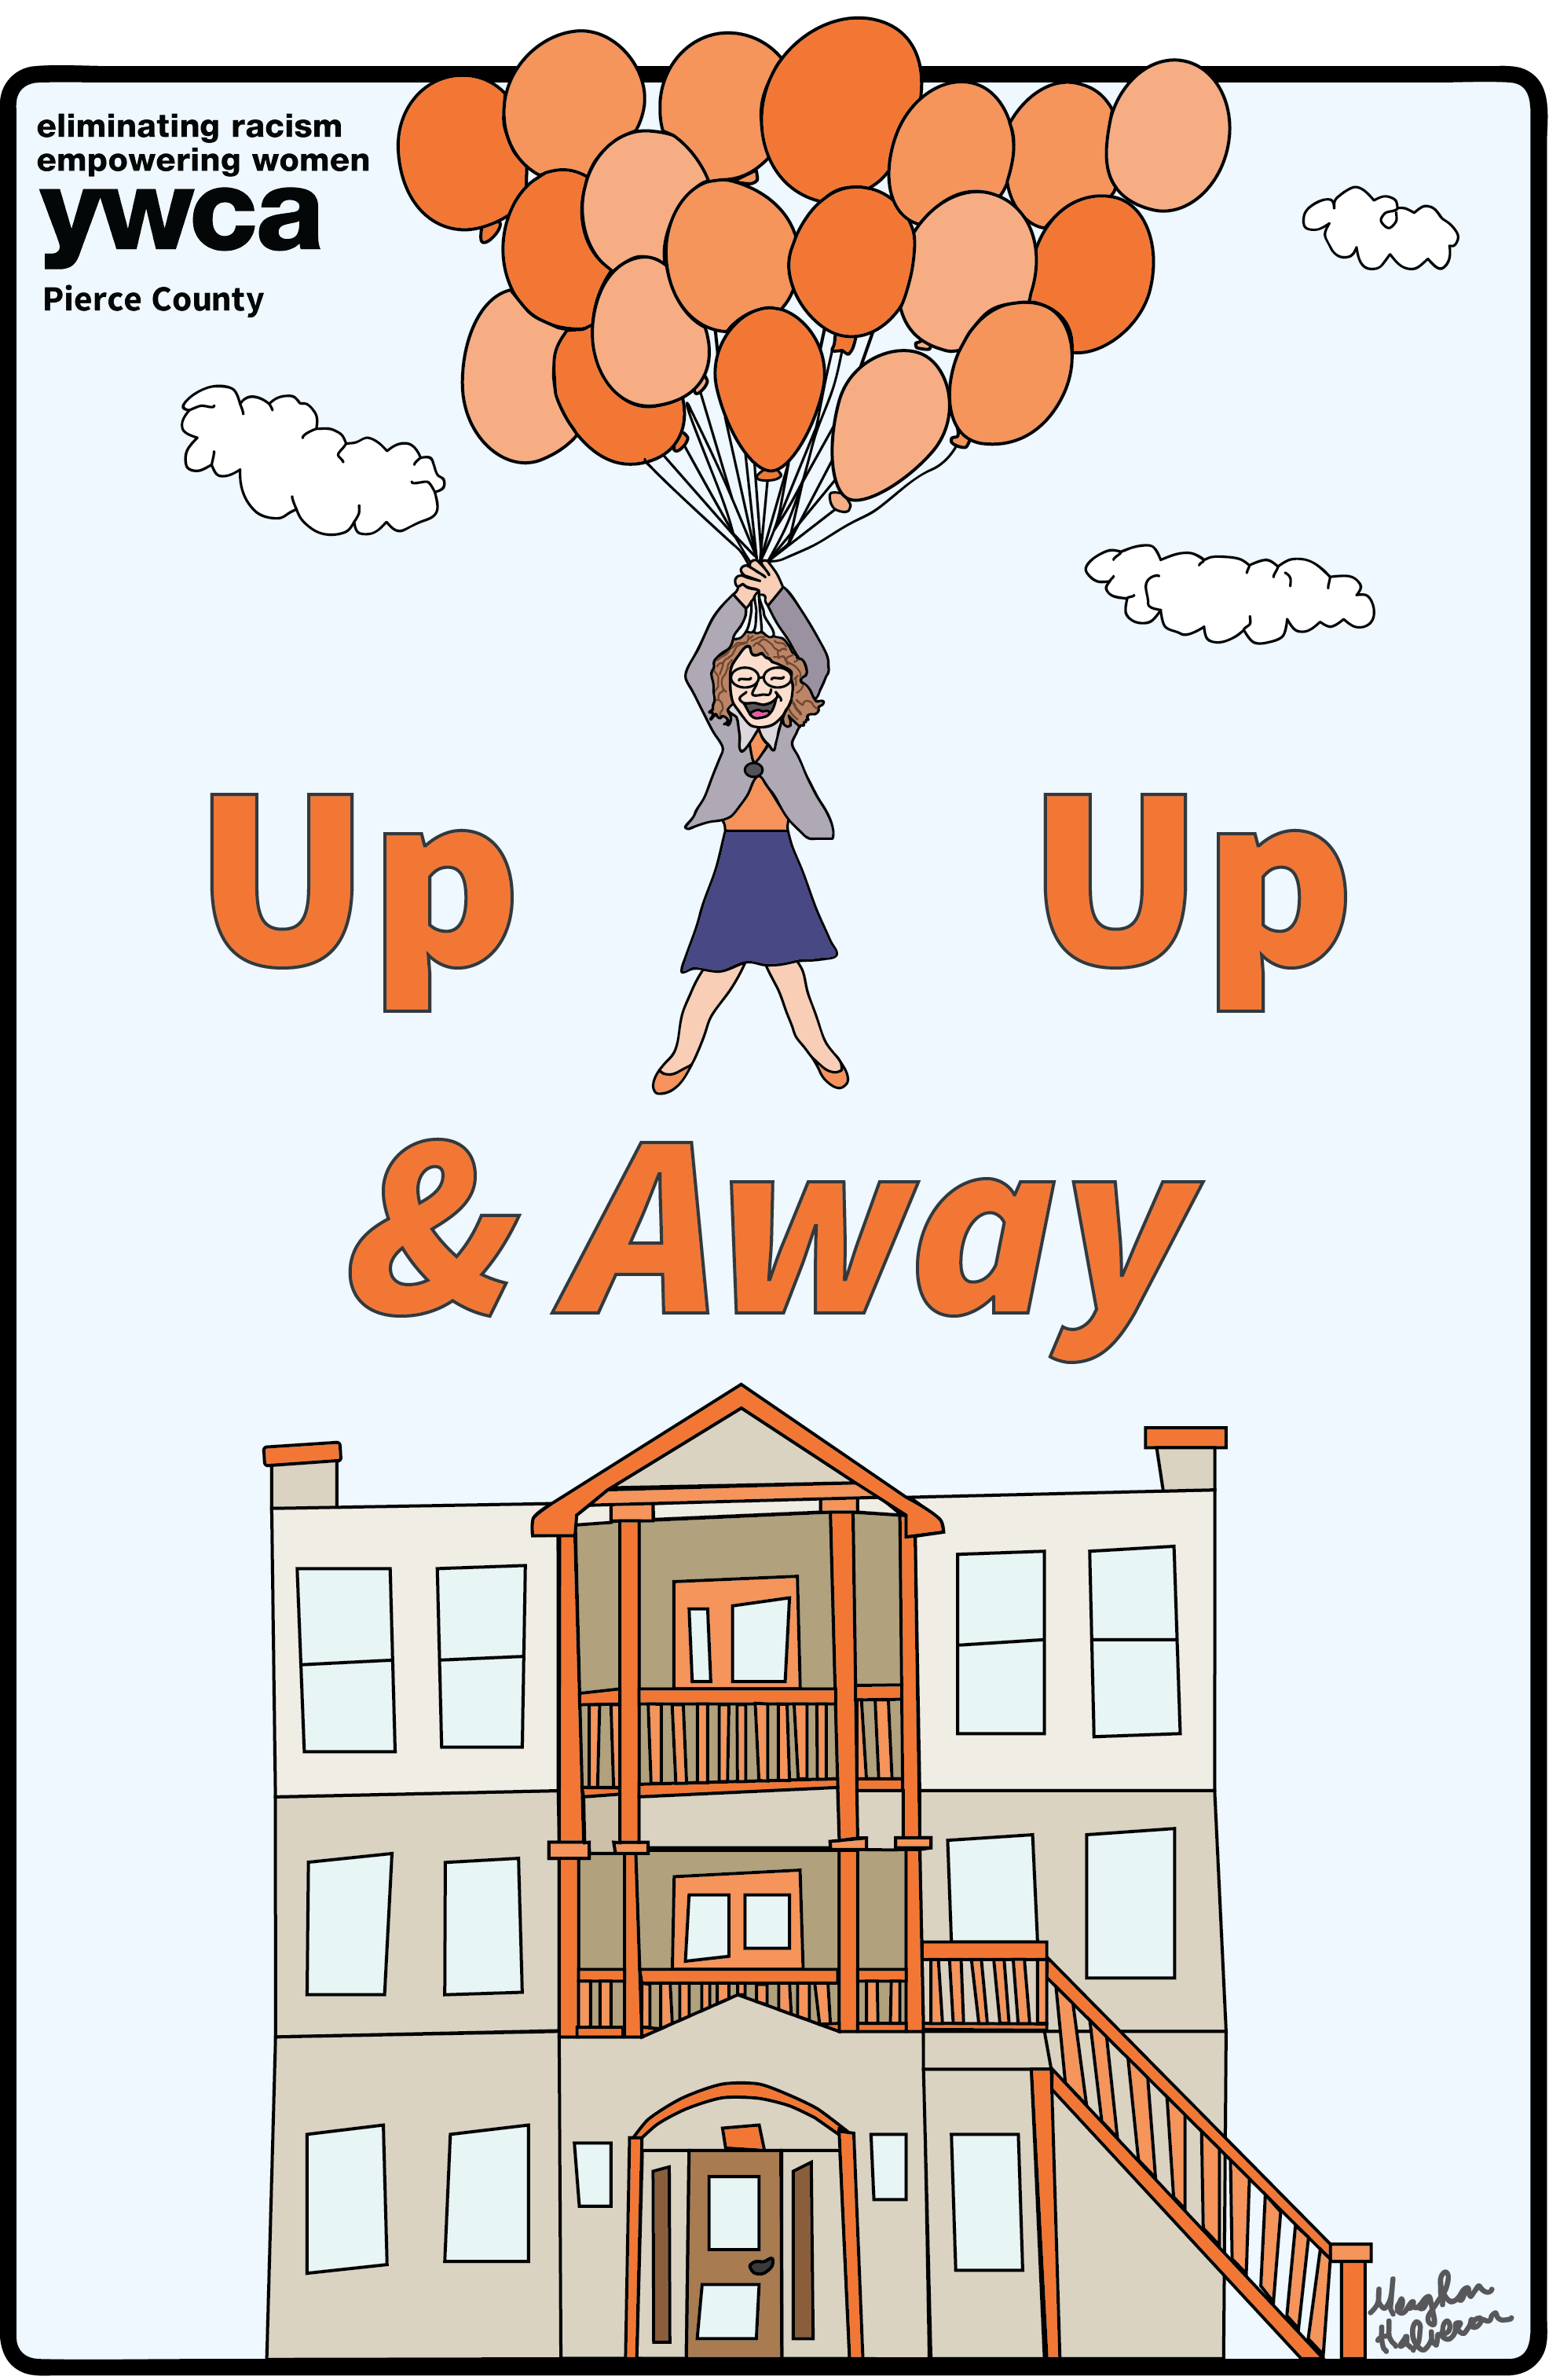 "White woman being carried by a bunch of orange balloons over a three story tan and orange shelter building. The words ""Up, Up, & Away"" are in the middle of the page."